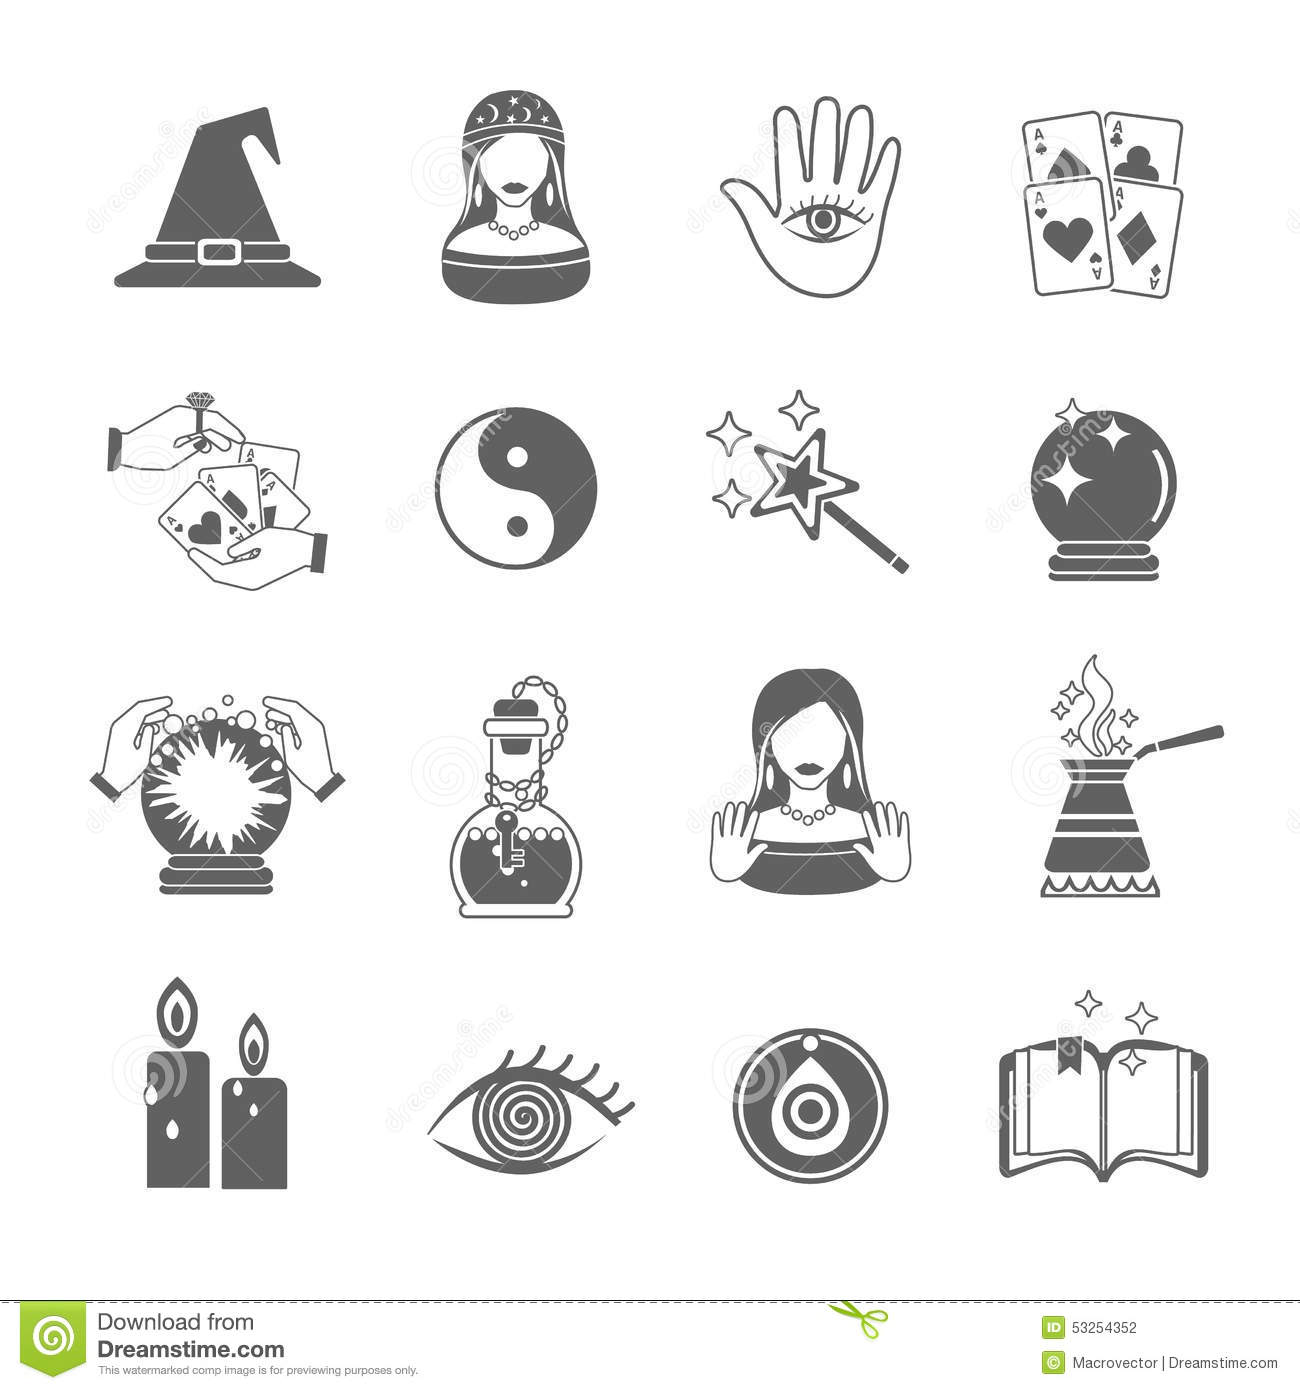 fortune teller icon set stock vector image 53254352. Black Bedroom Furniture Sets. Home Design Ideas